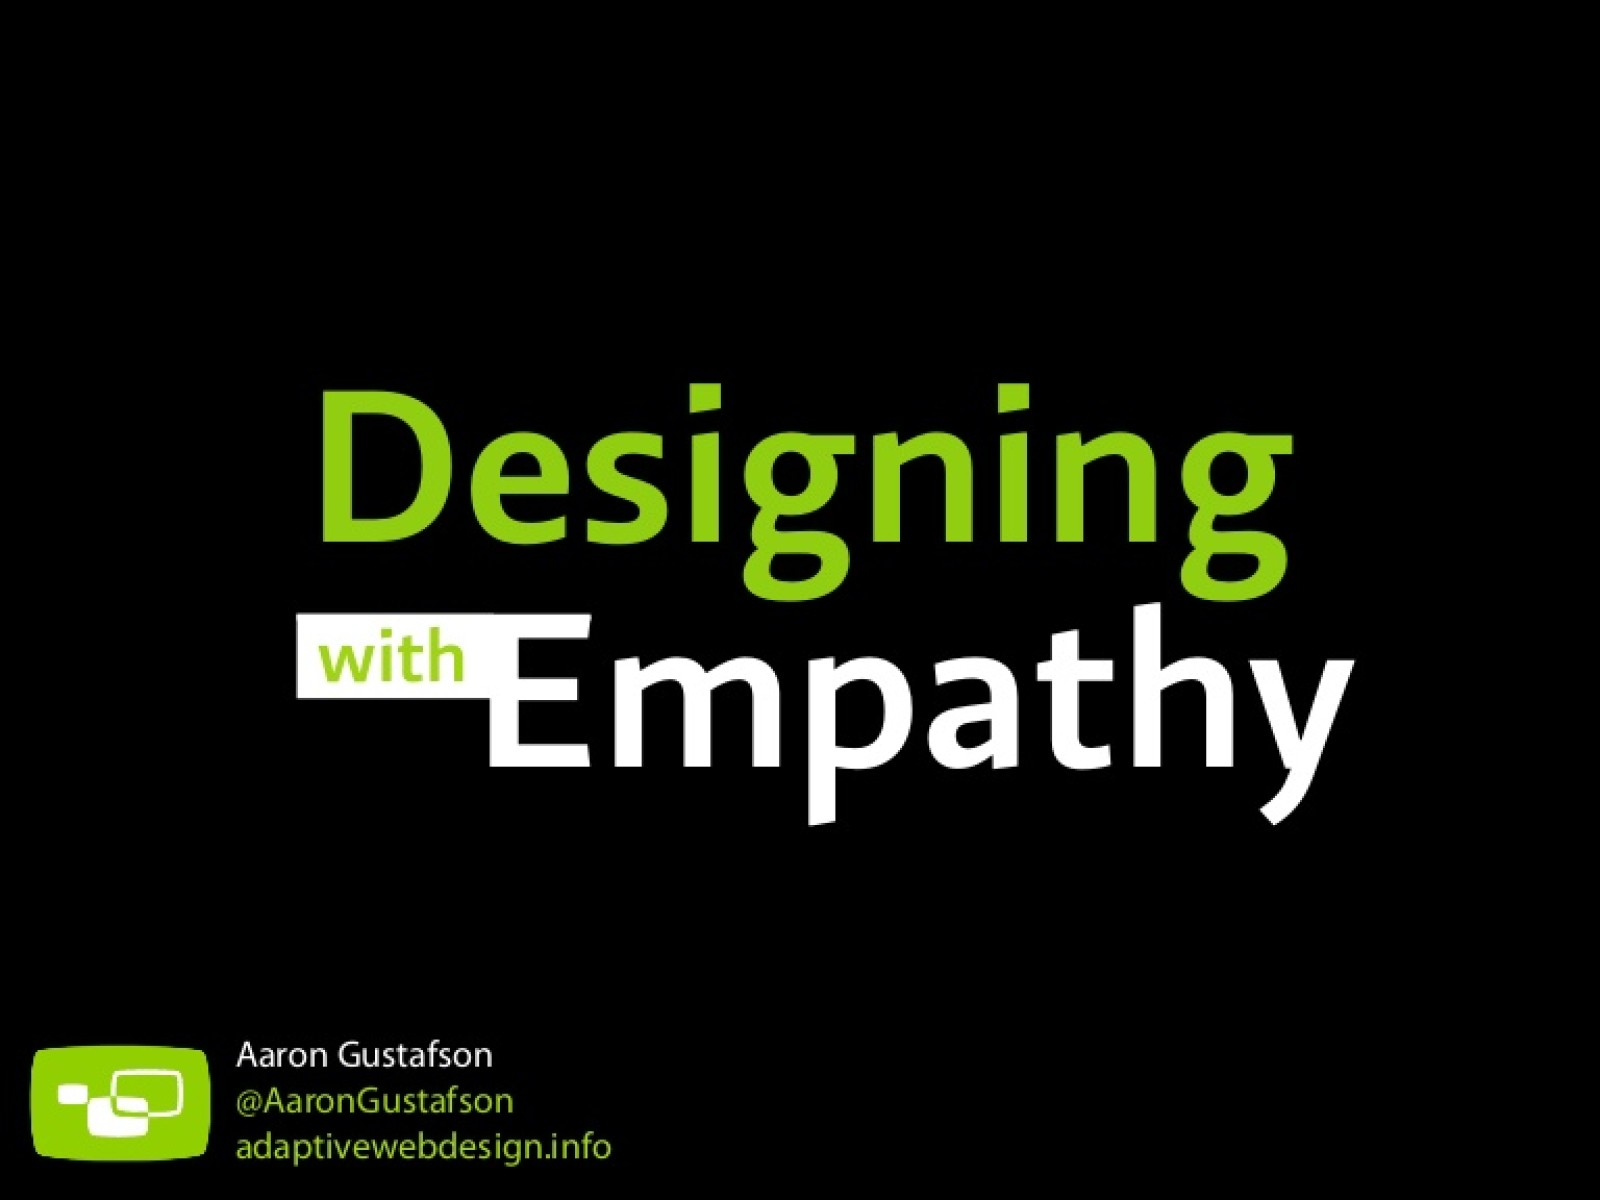 Designing with Empathy